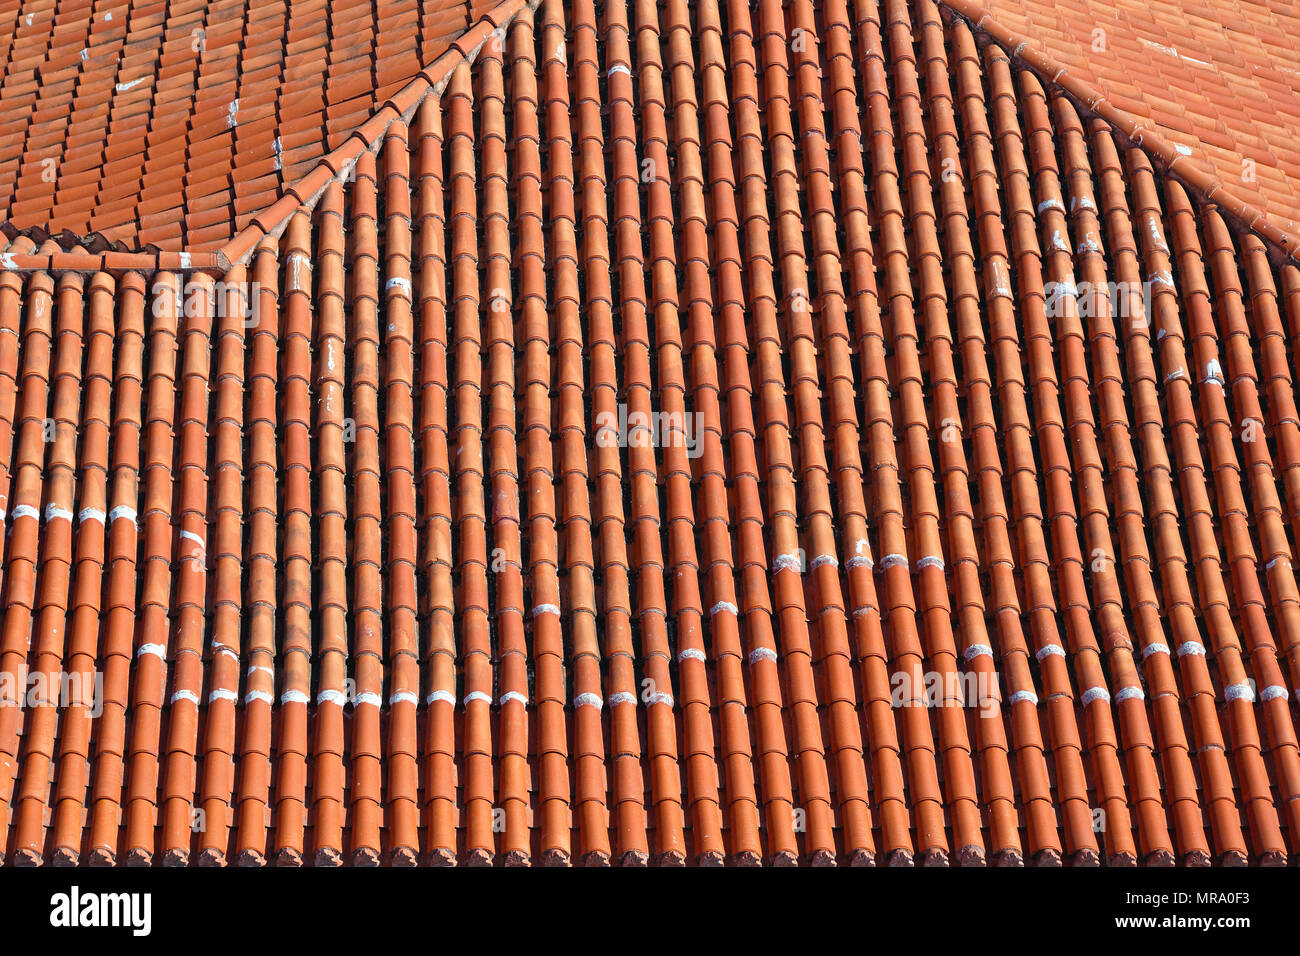 Terracotta Ceramic Roof Tiles From Above Stock Photo 186460711 Alamy